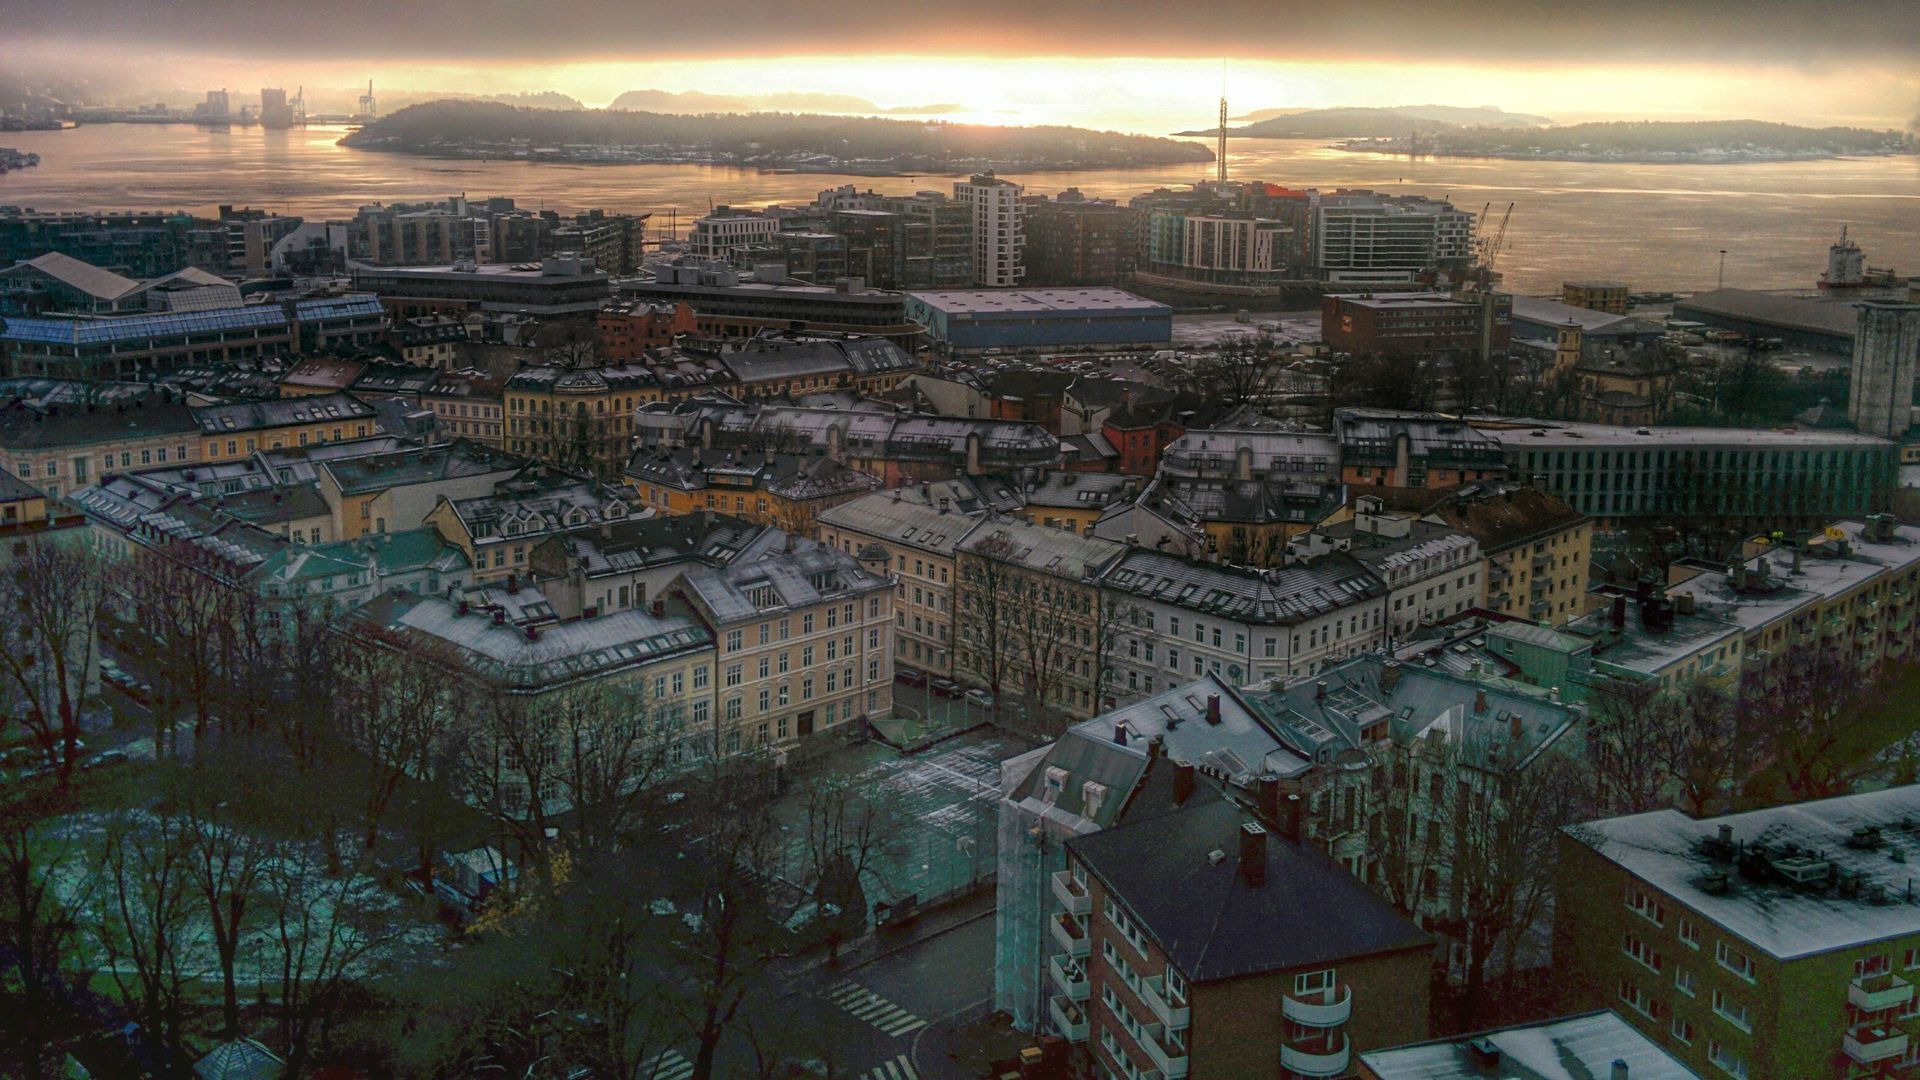 Oslo, Norway - taken this morning on my phone. [1920x1080] [OC]